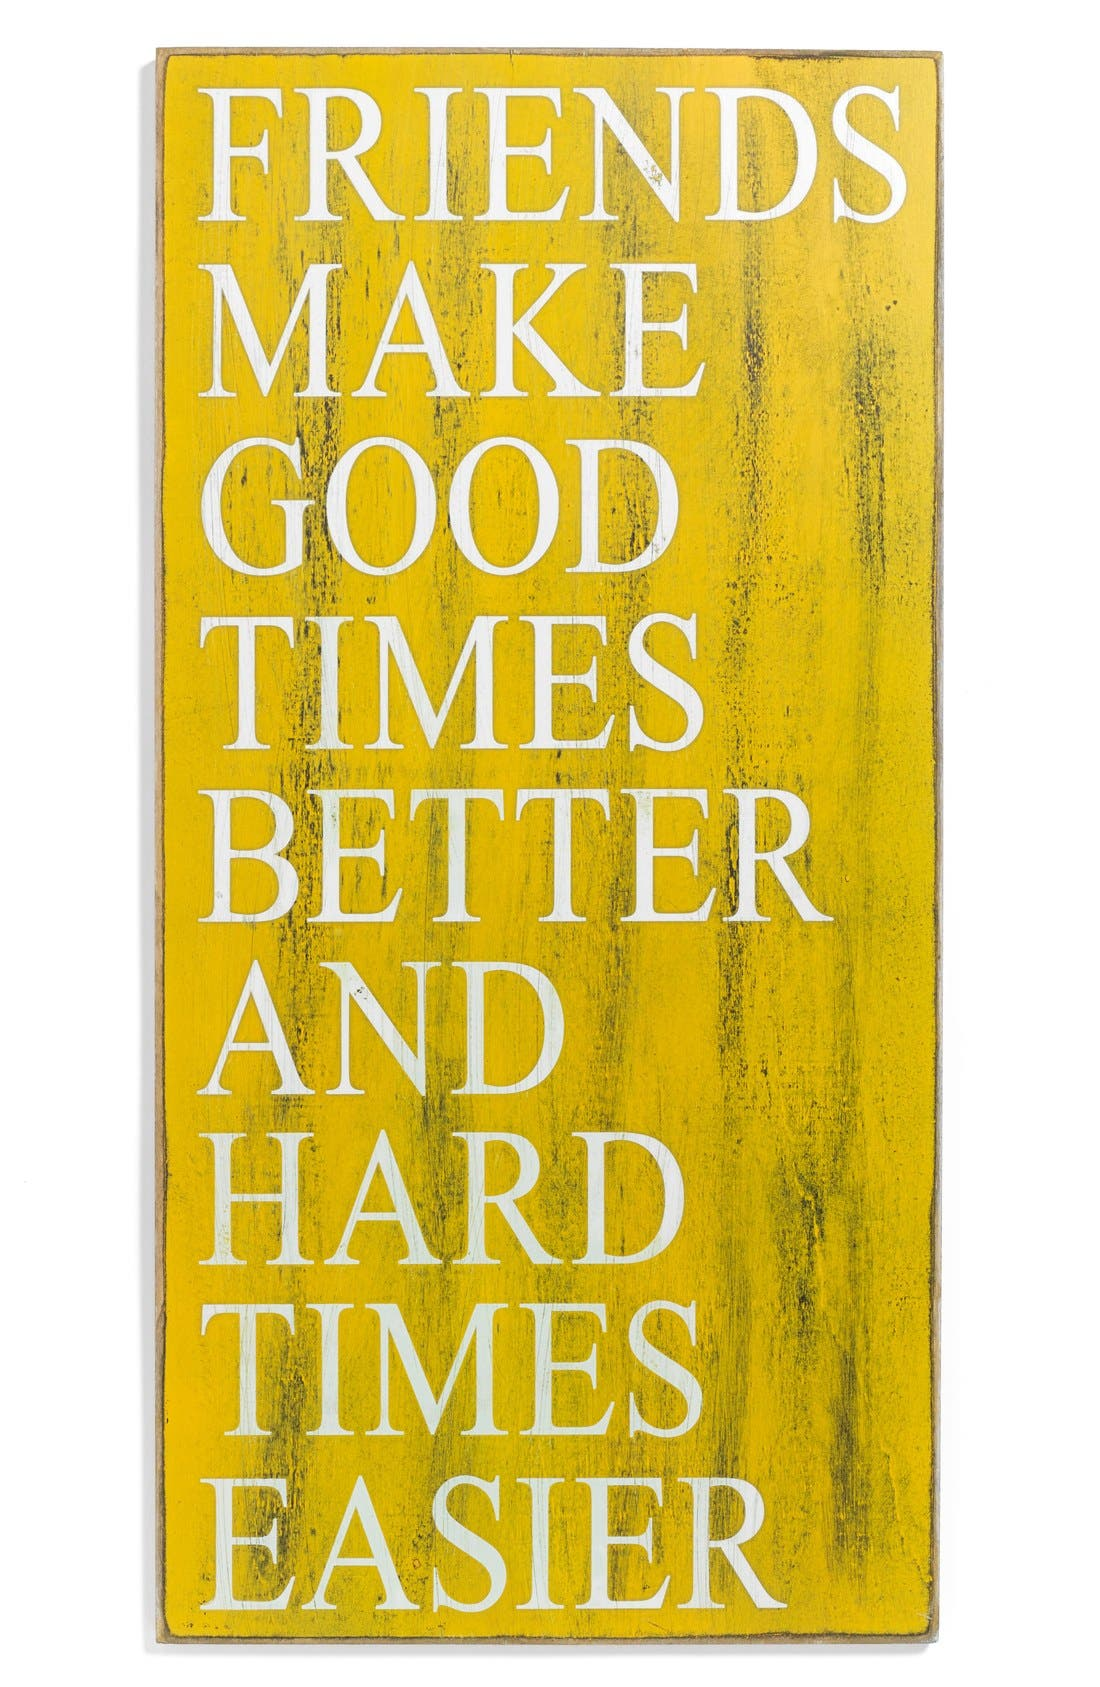 Alternate Image 1 Selected - Primitives by Kathy 'Friends Make Good Times Better' Box Sign